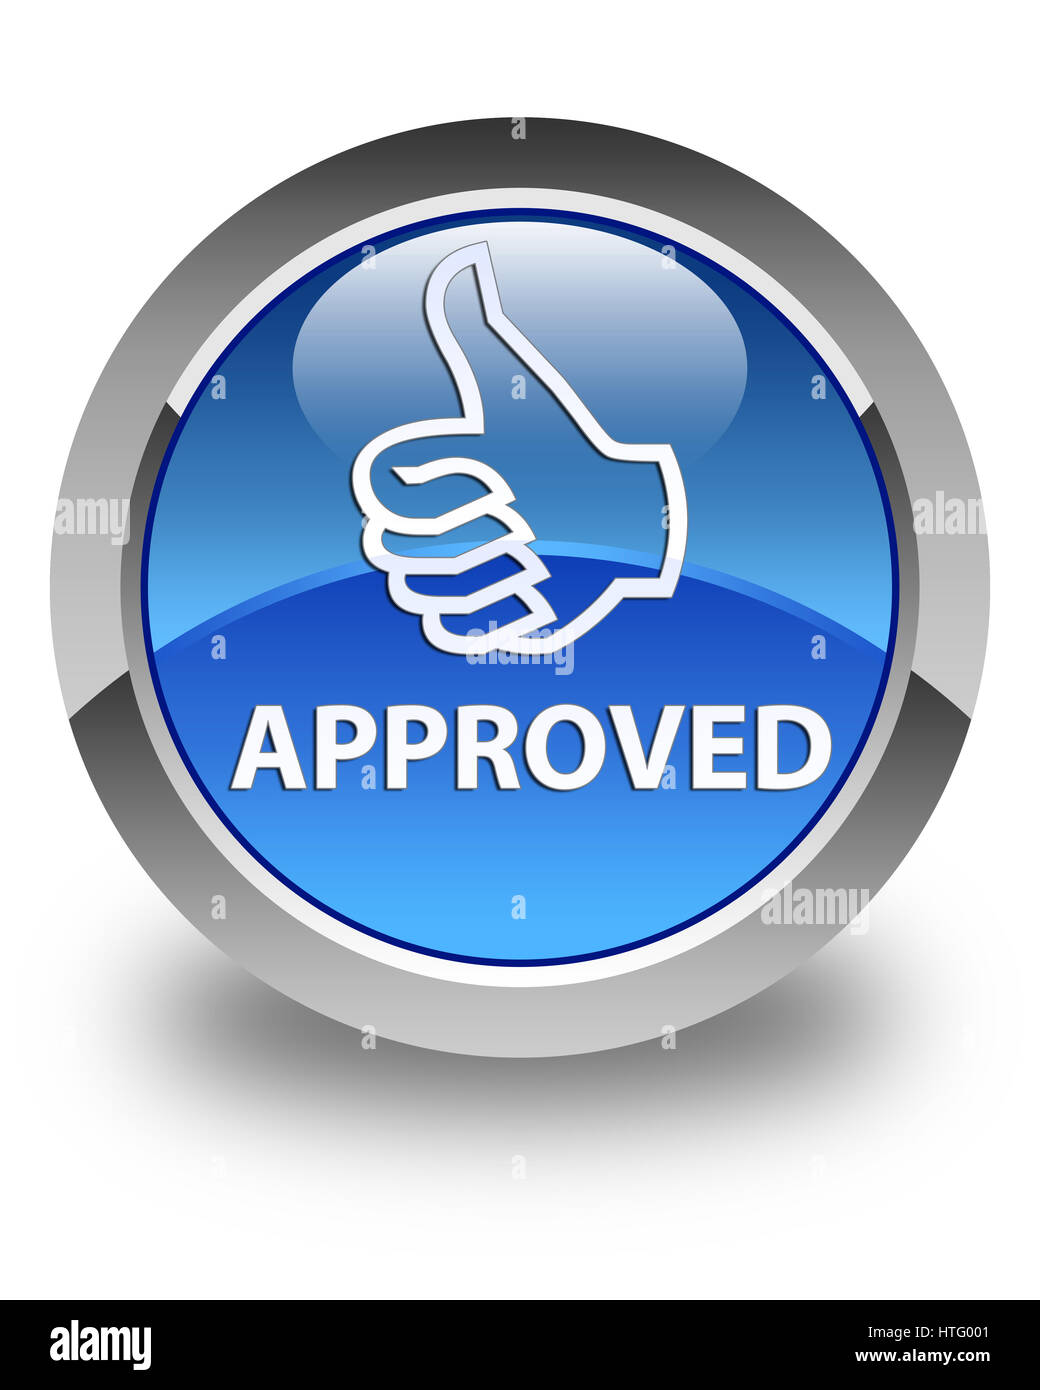 Approved (thumbs up icon) isolated on glossy blue round button abstract illustration Stock Photo